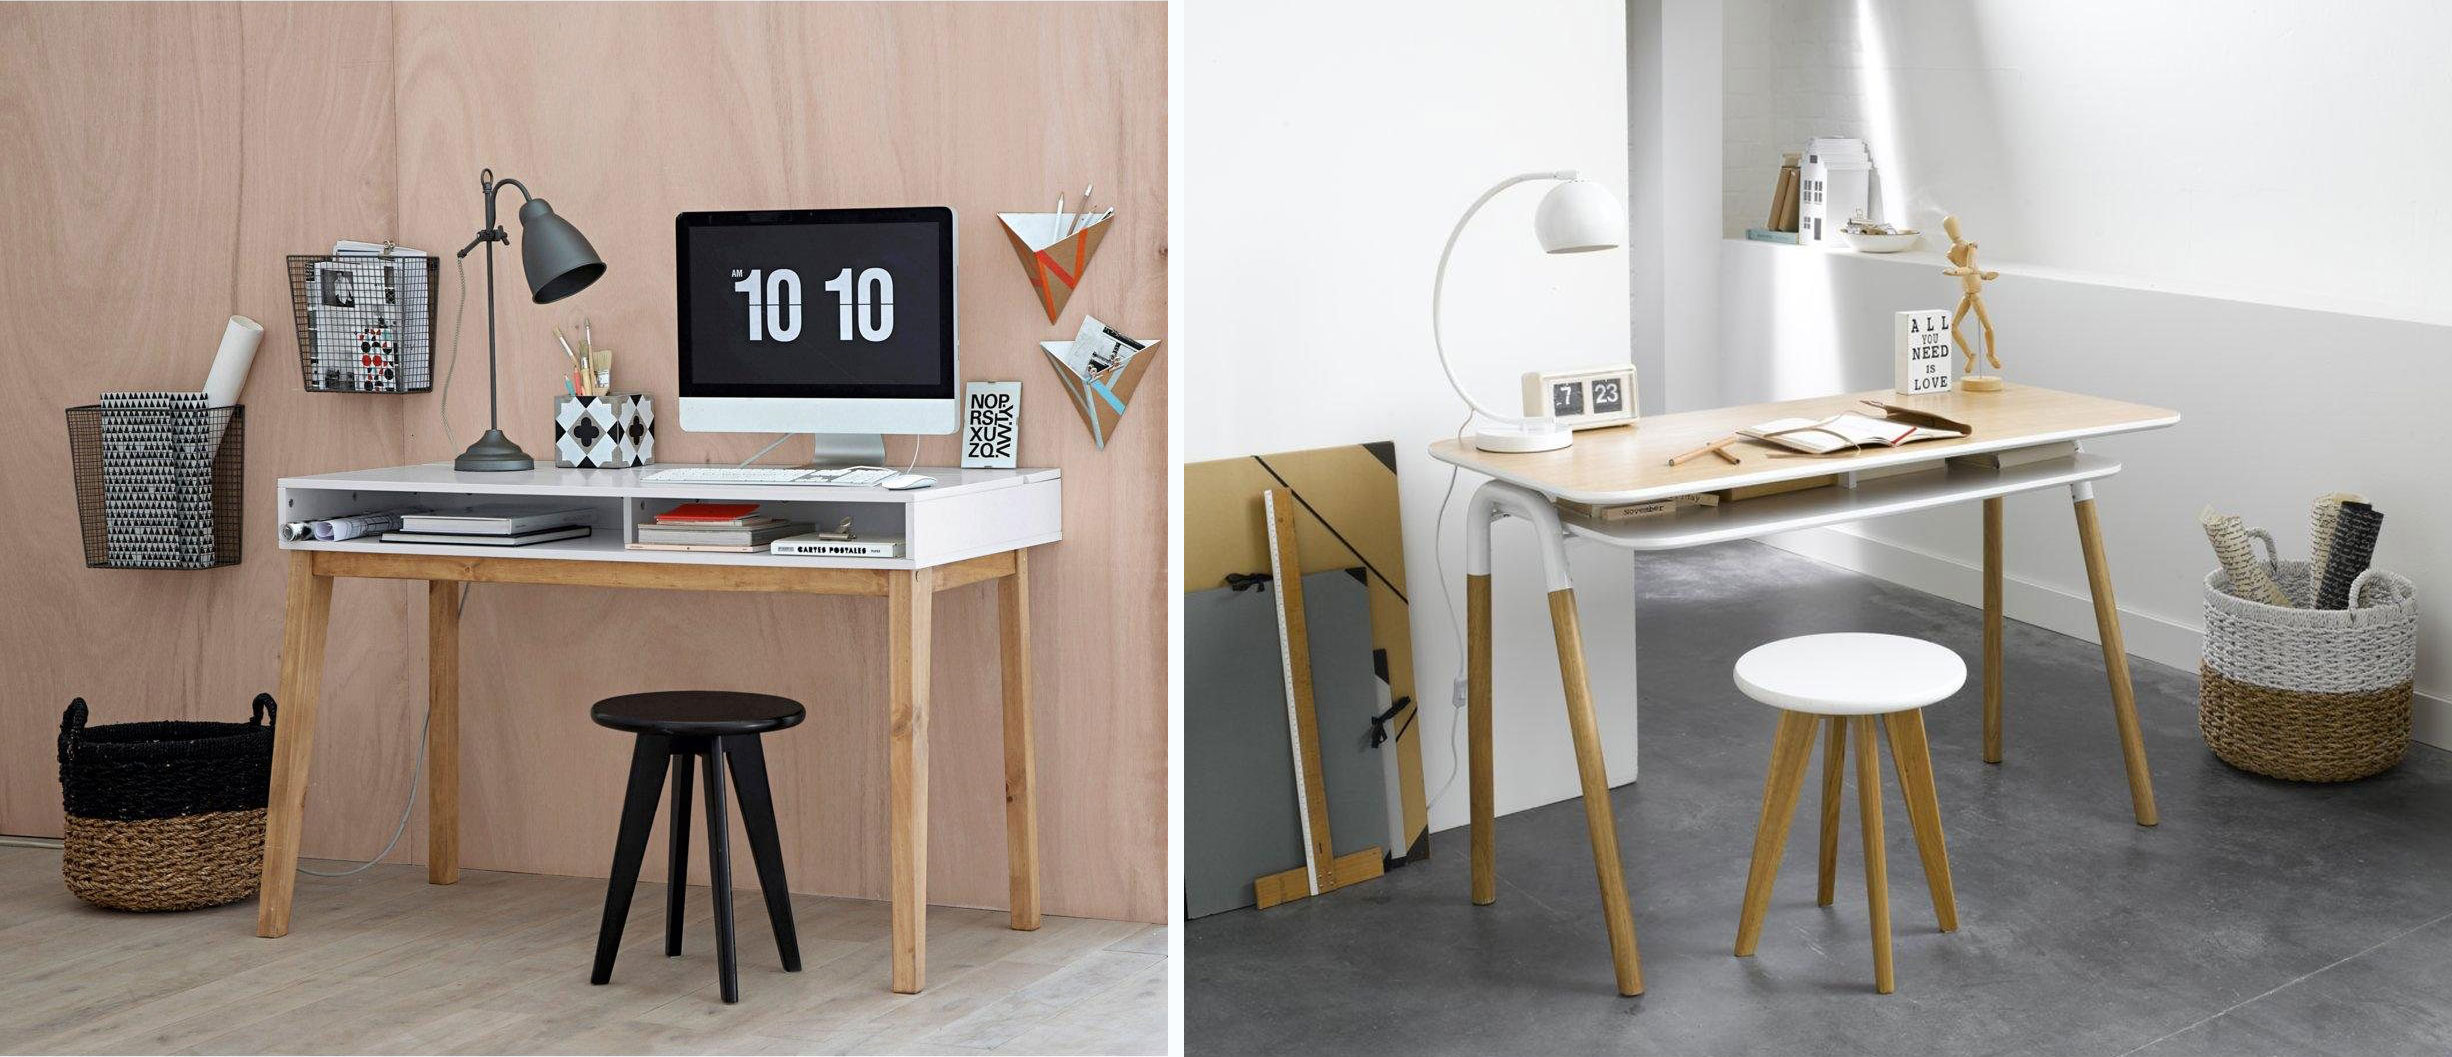 D co bureau style scandinave - Bureau cocktail scandinave ...